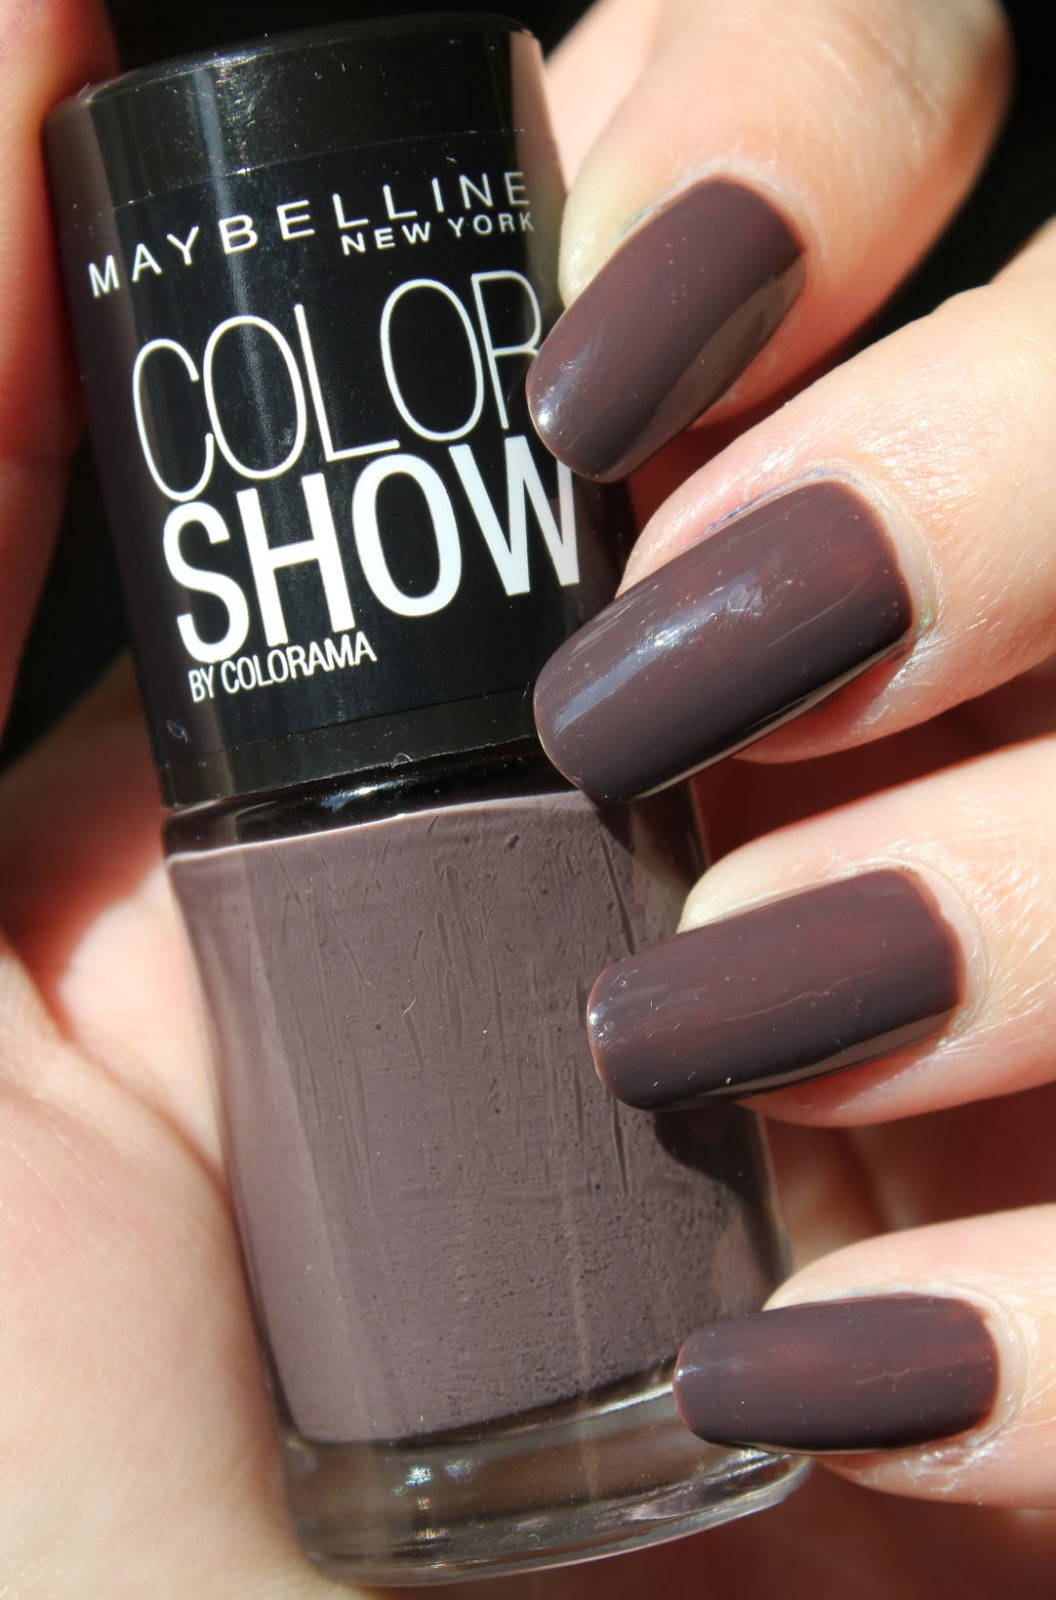 http://lacquediction.blogspot.de/2014/10/maybelline-colorshow-549-midnight-taupe.html